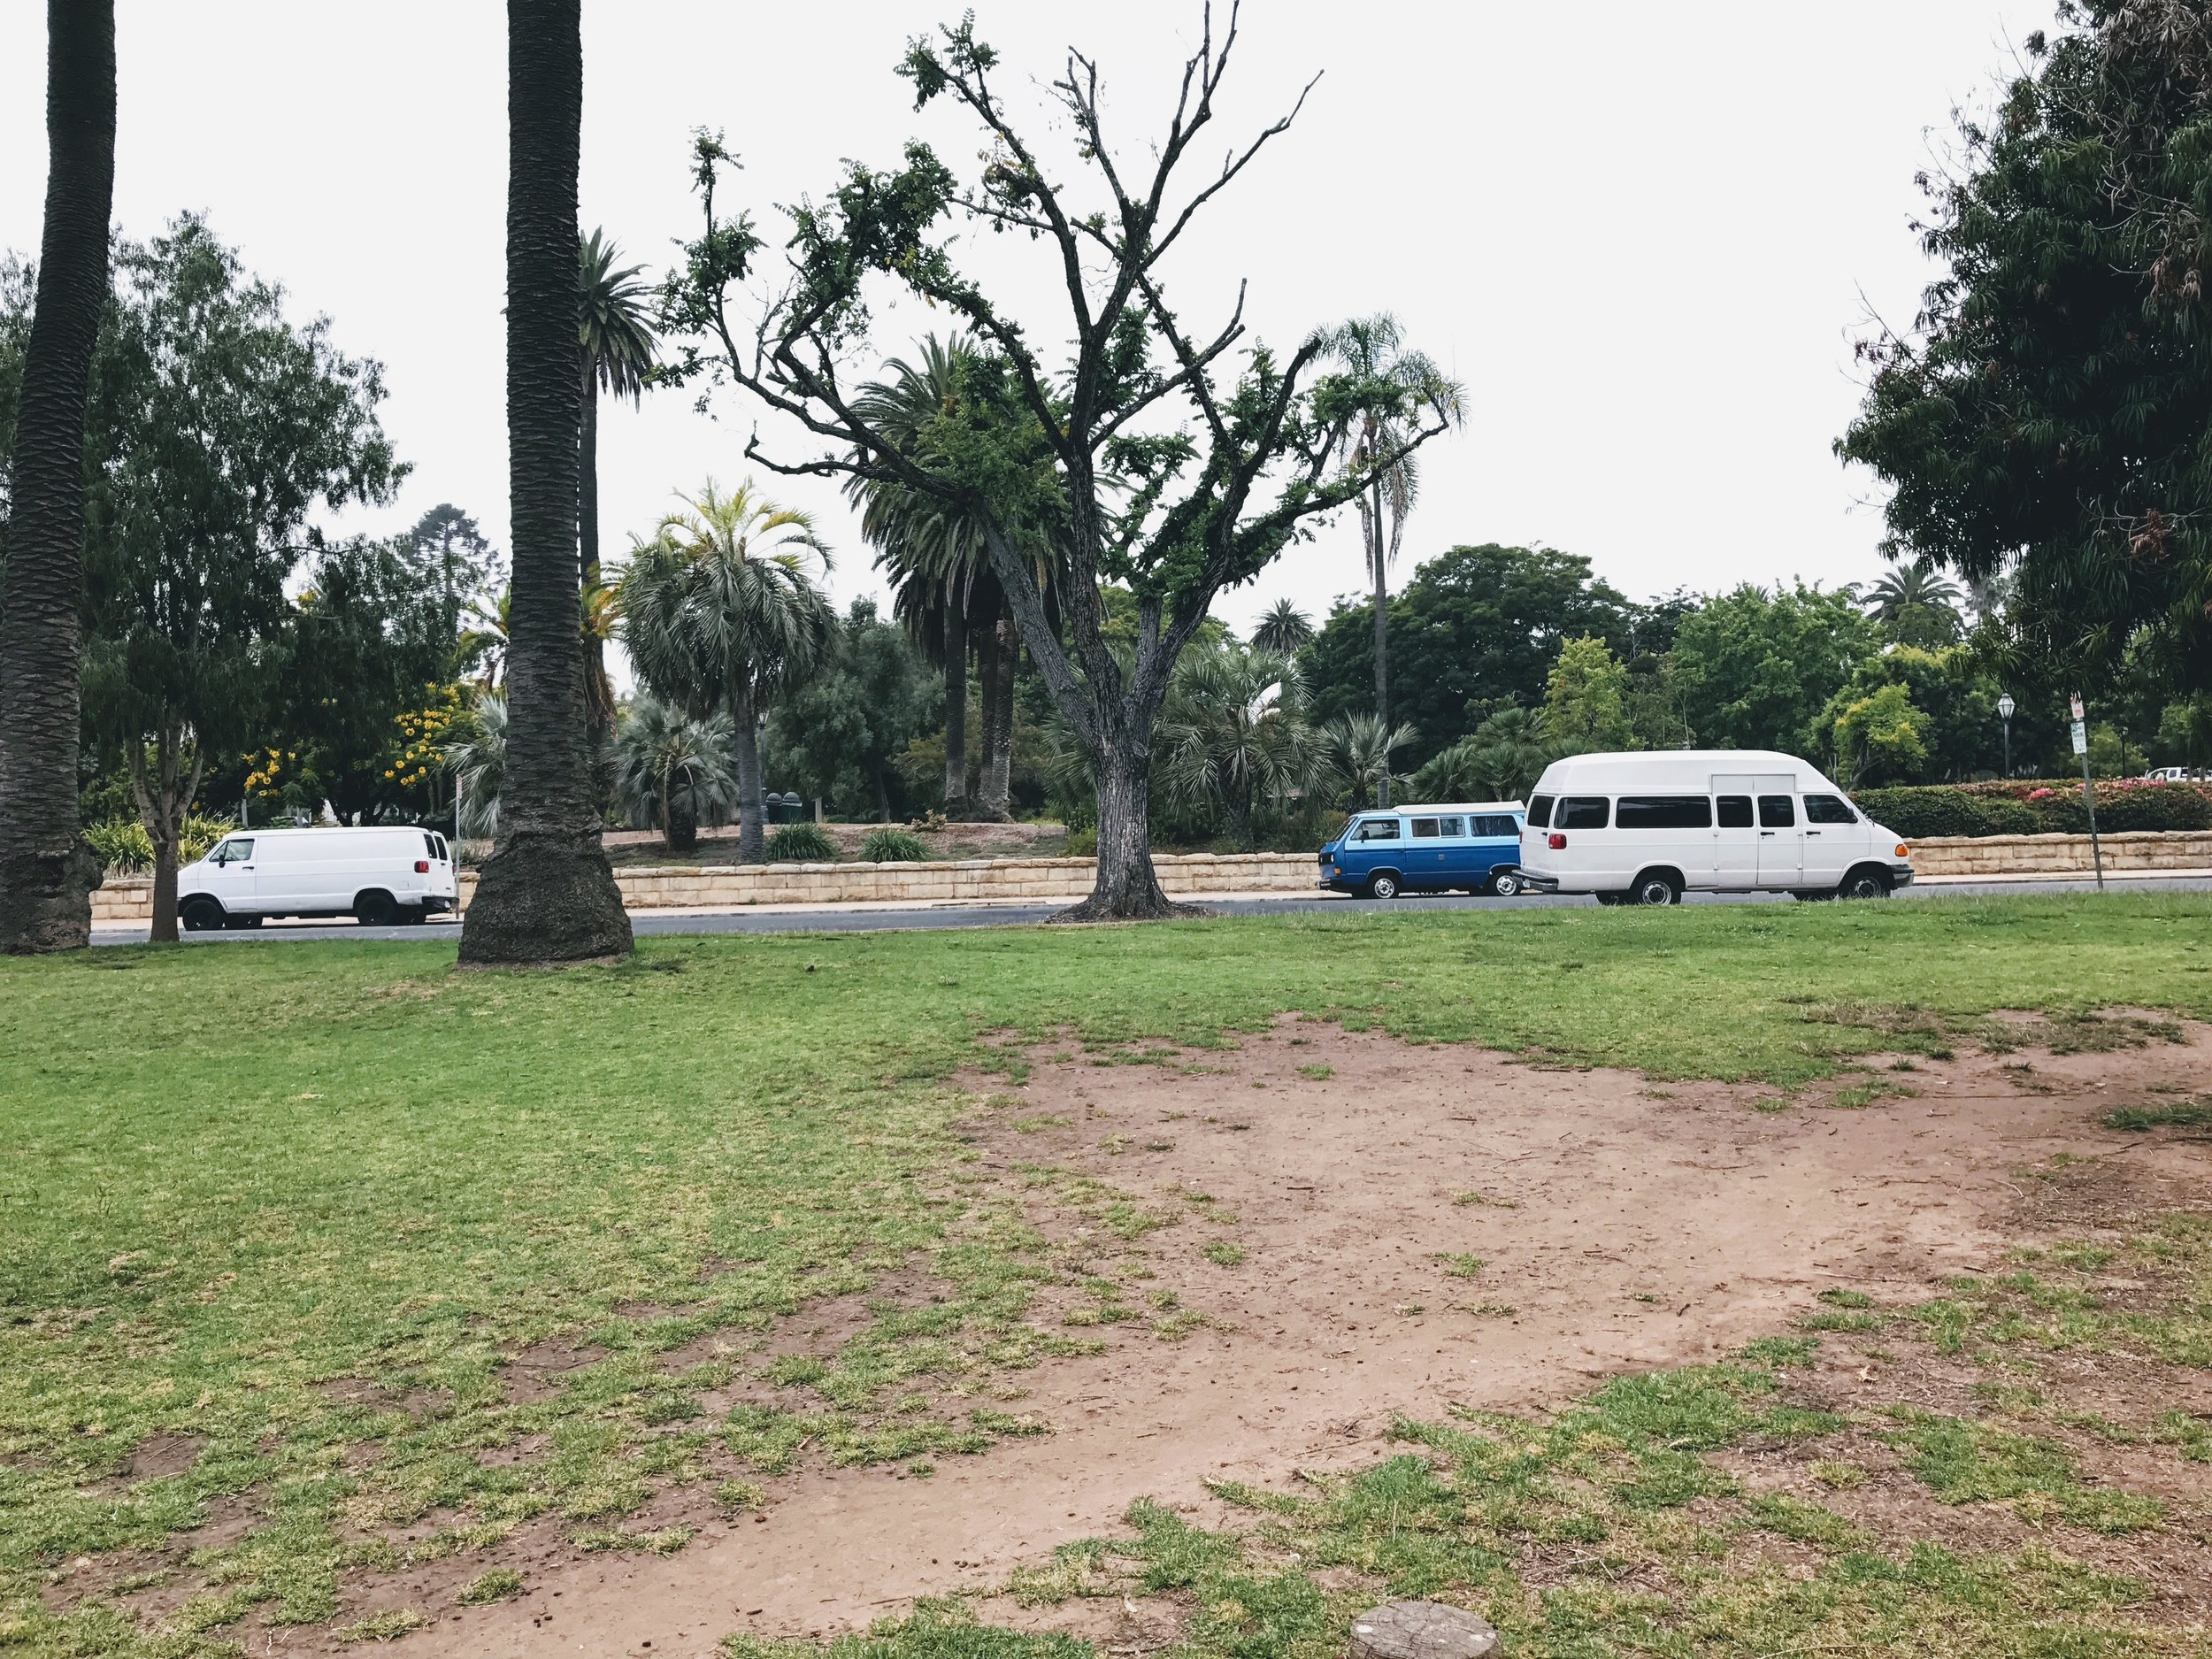 """Kid's World Park in Santa Barbara, Ca.  Look for other van lifers. There is safety in numbers. We knew this would be a good spot to sleep when we saw other van life """"neighbors"""" on the block."""